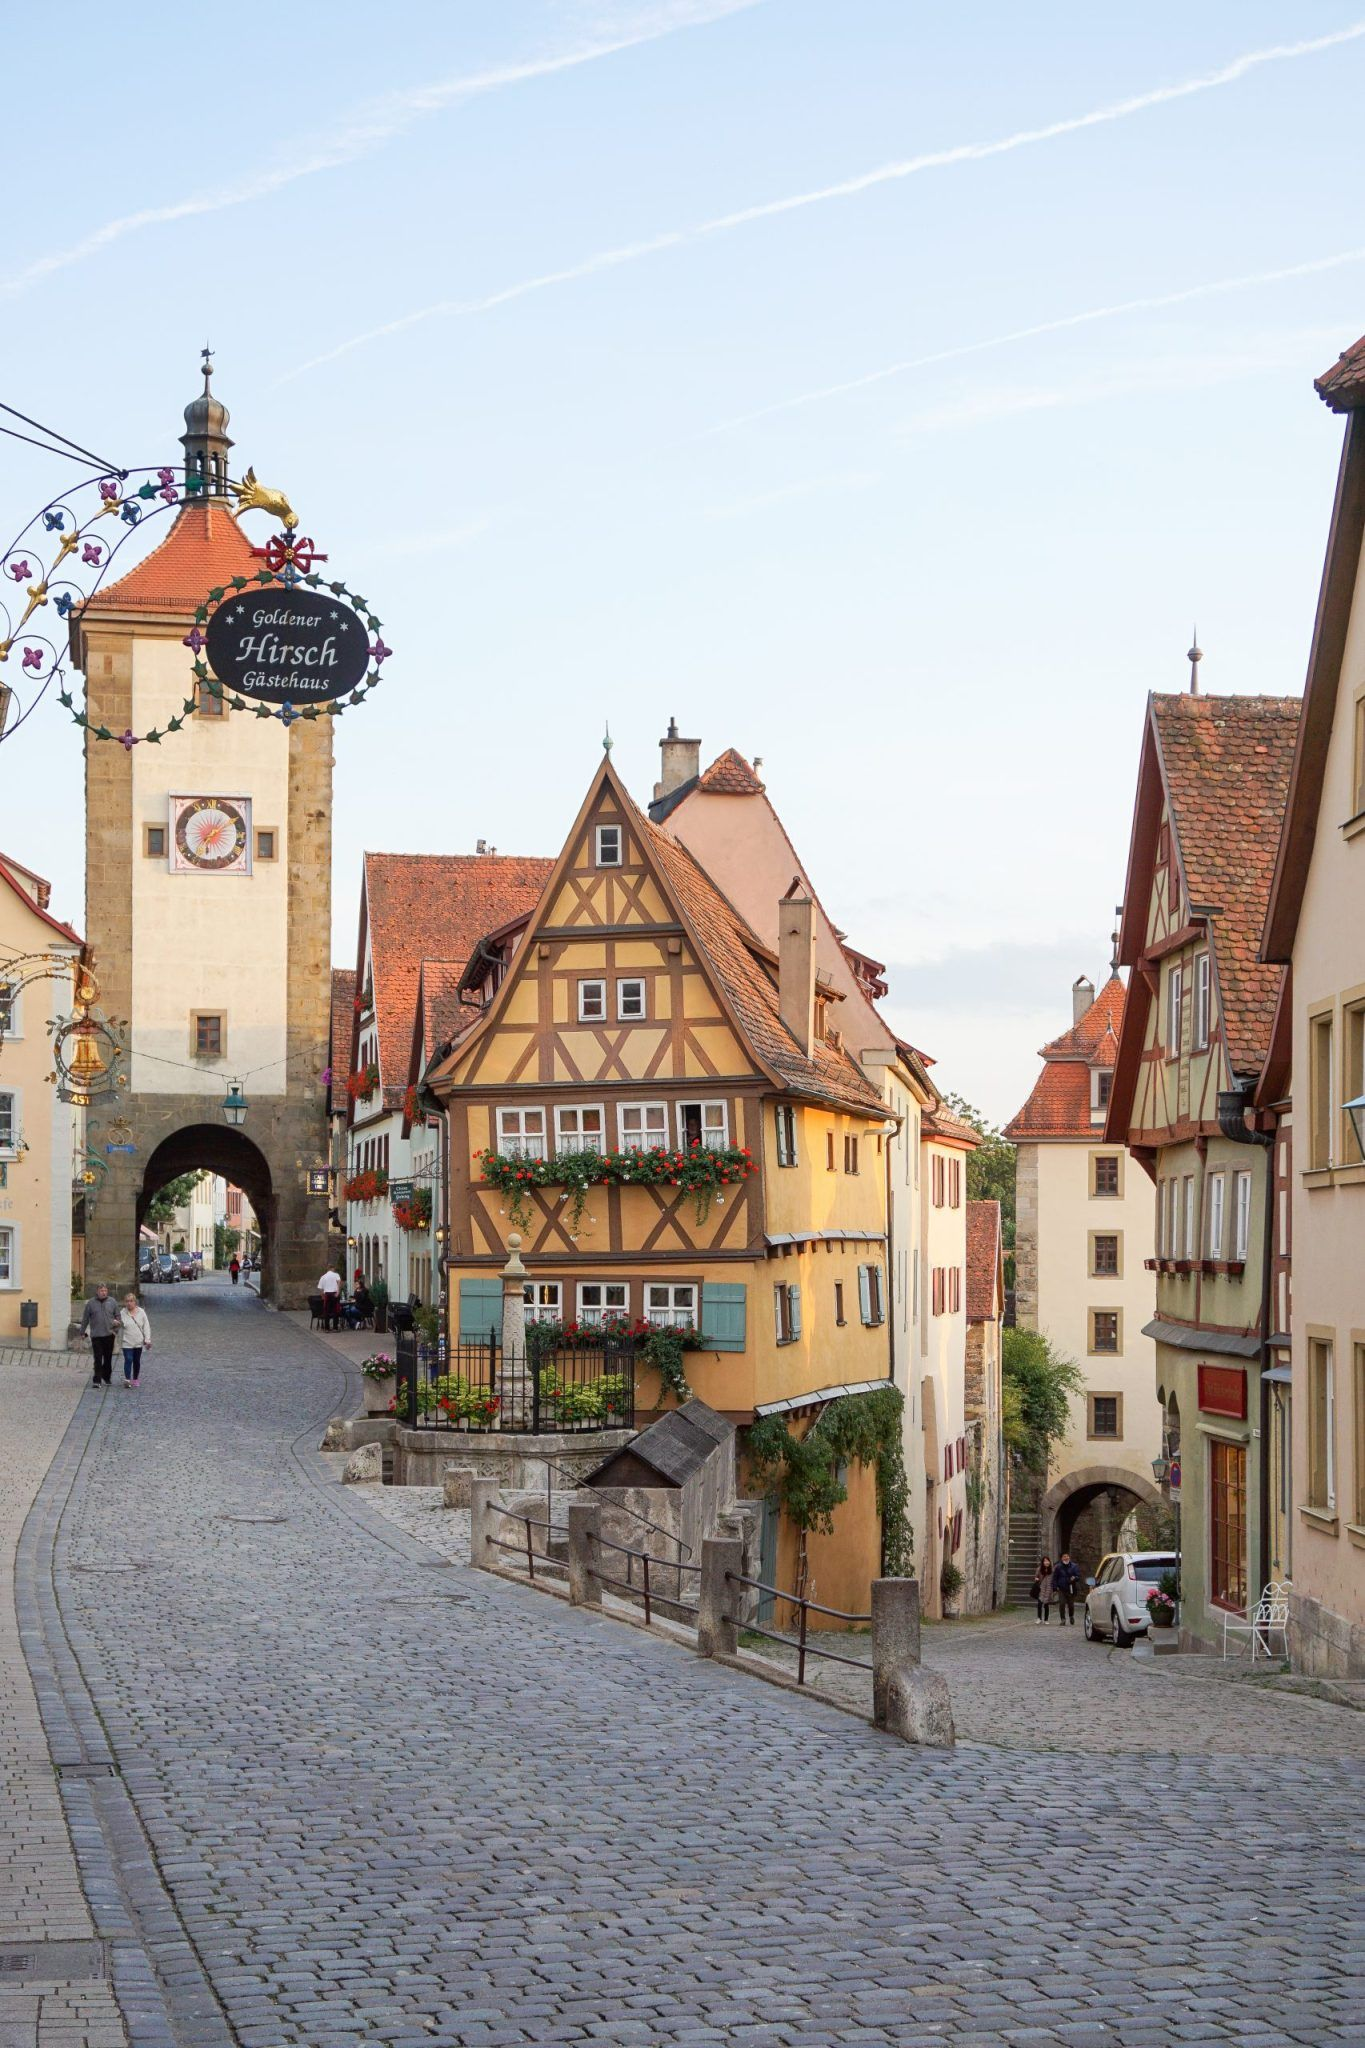 How To Spend 24 Hours in Rothenburg Ob Der Tauber, Germany